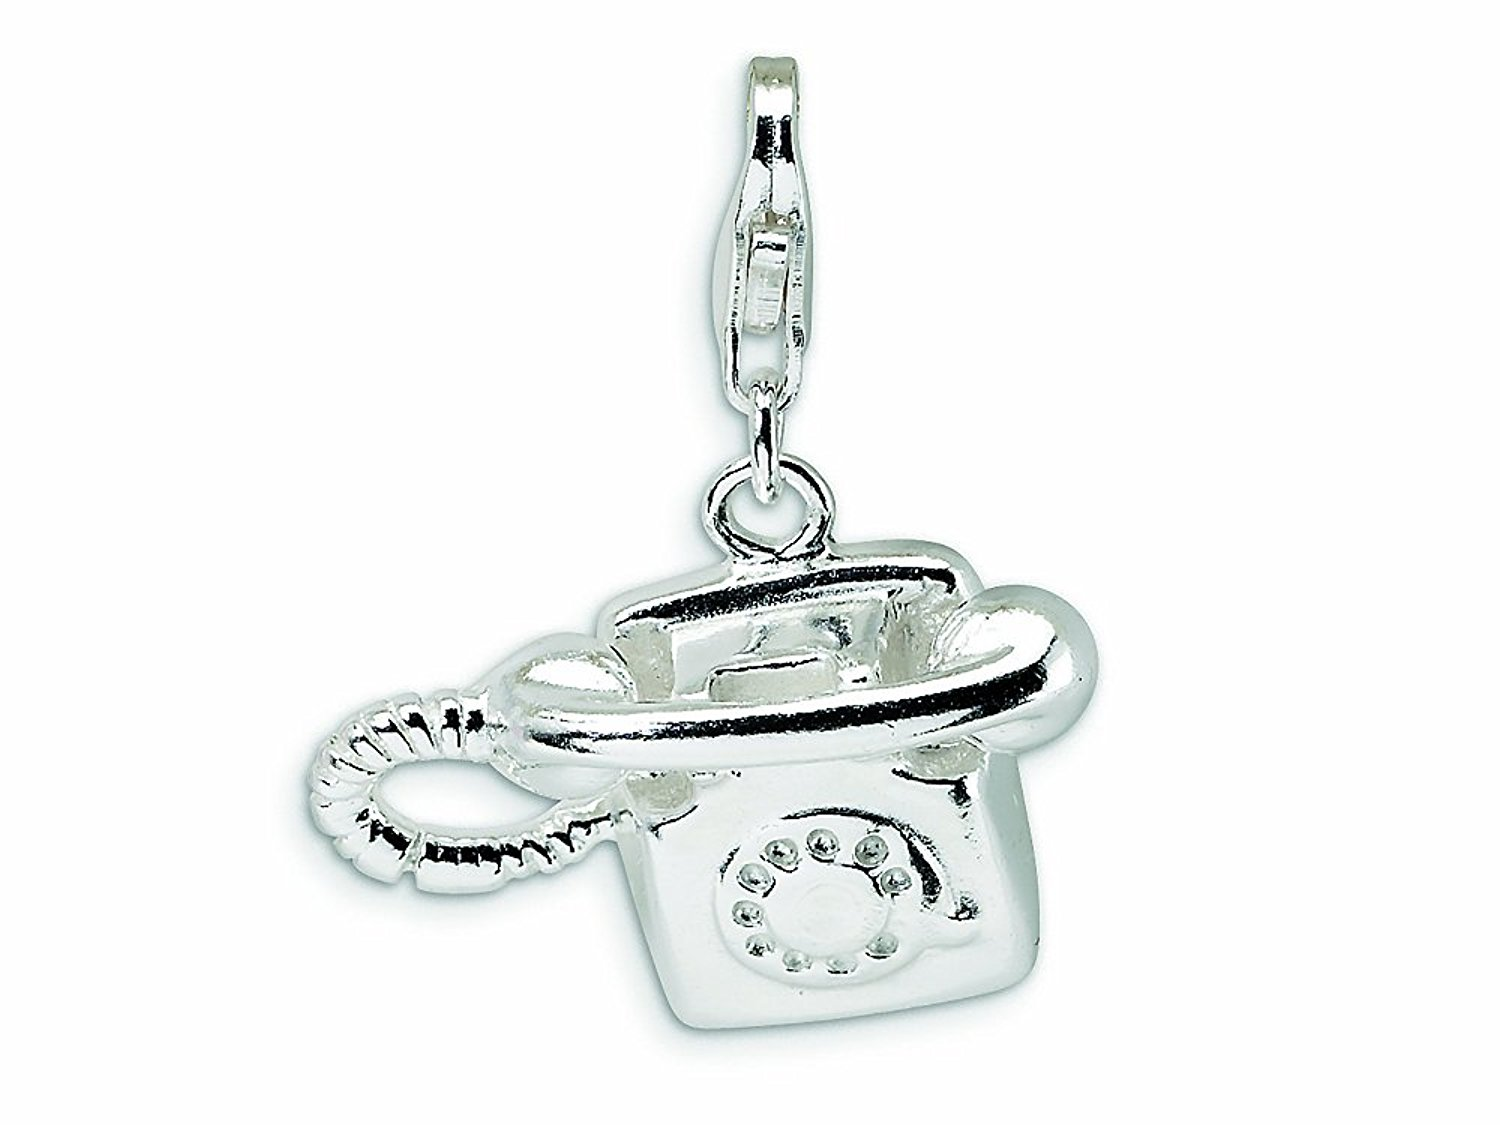 Amore LaVita Sterling Silver Polished Telephone Lobster Clasp Bracelet Charm